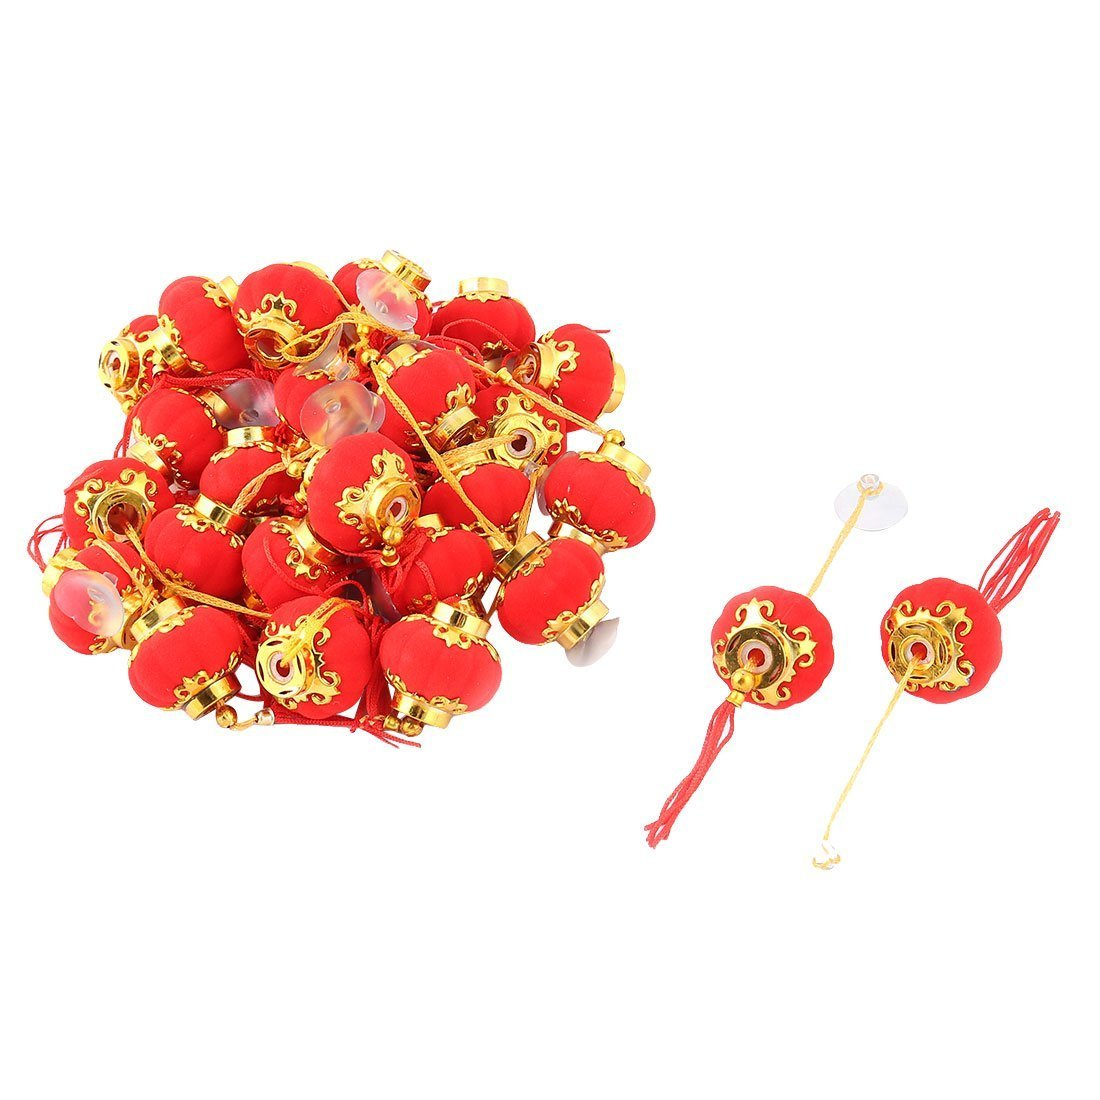 Pumpkin Shape Tassels Adorn Chinese Red Lantern Decoration 30 Pcs Sourcingmap a14010600ux1021